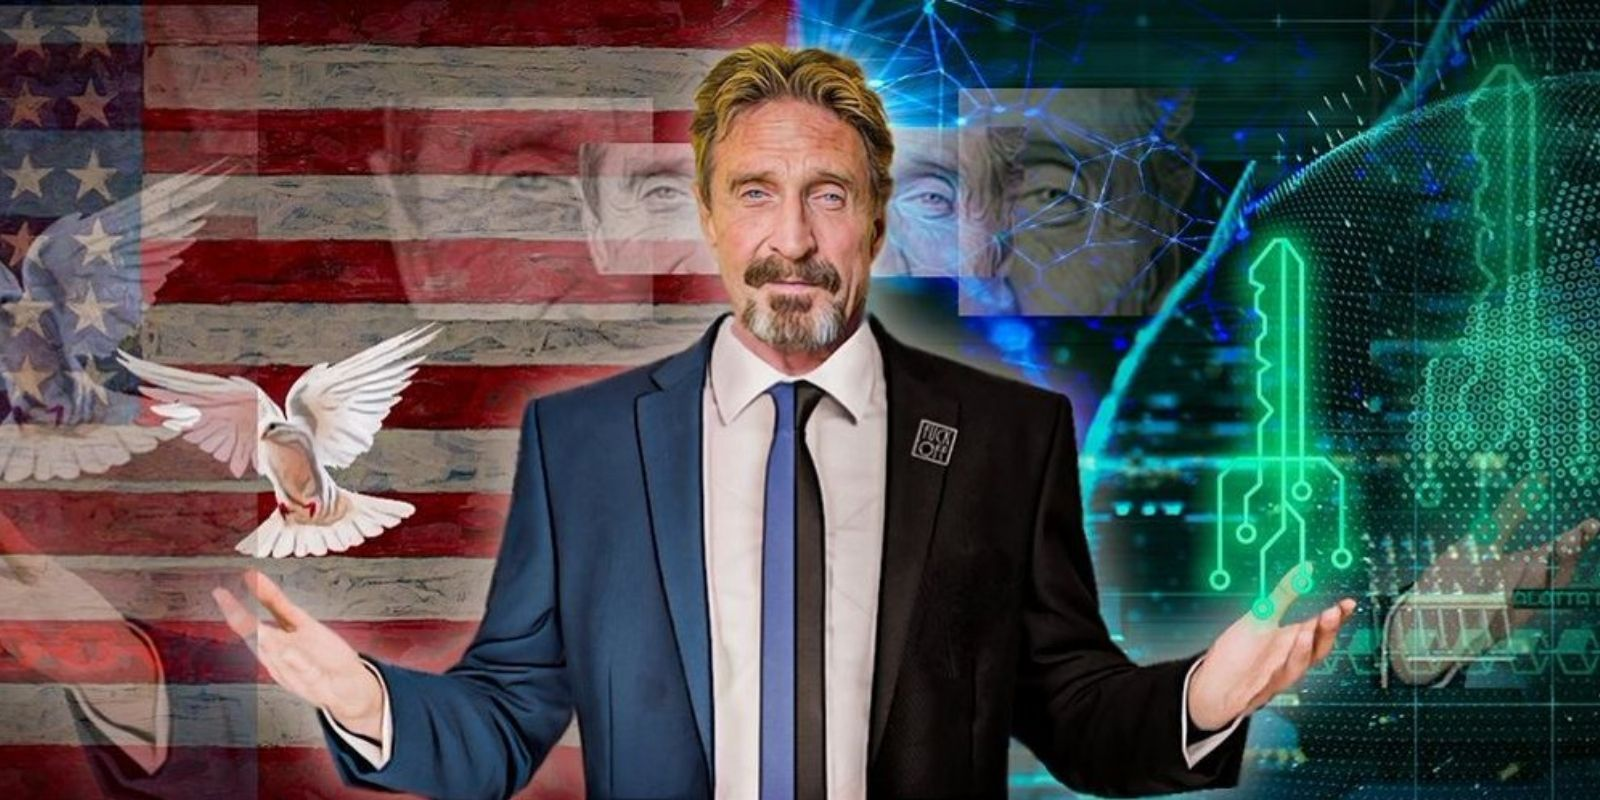 BREAKING: John McAfee found dead in prison cell after court allows extradition to US